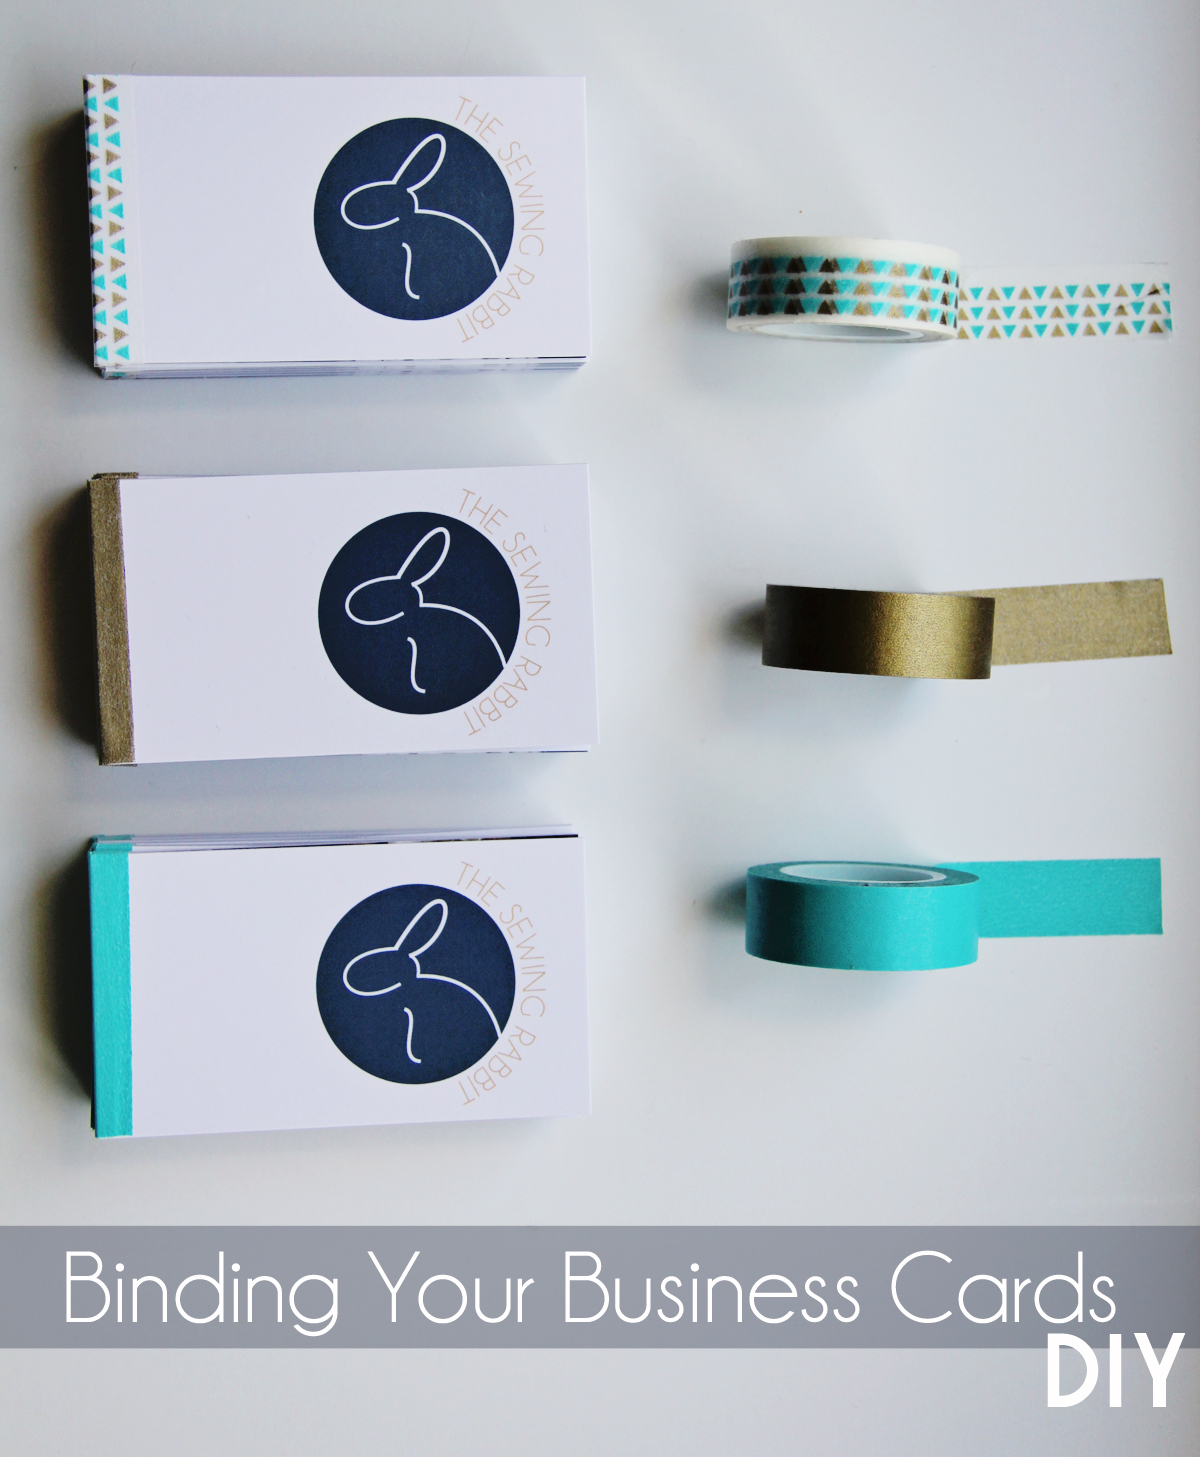 Turn your Business Cards into a Mini Book - The Sewing Rabbit